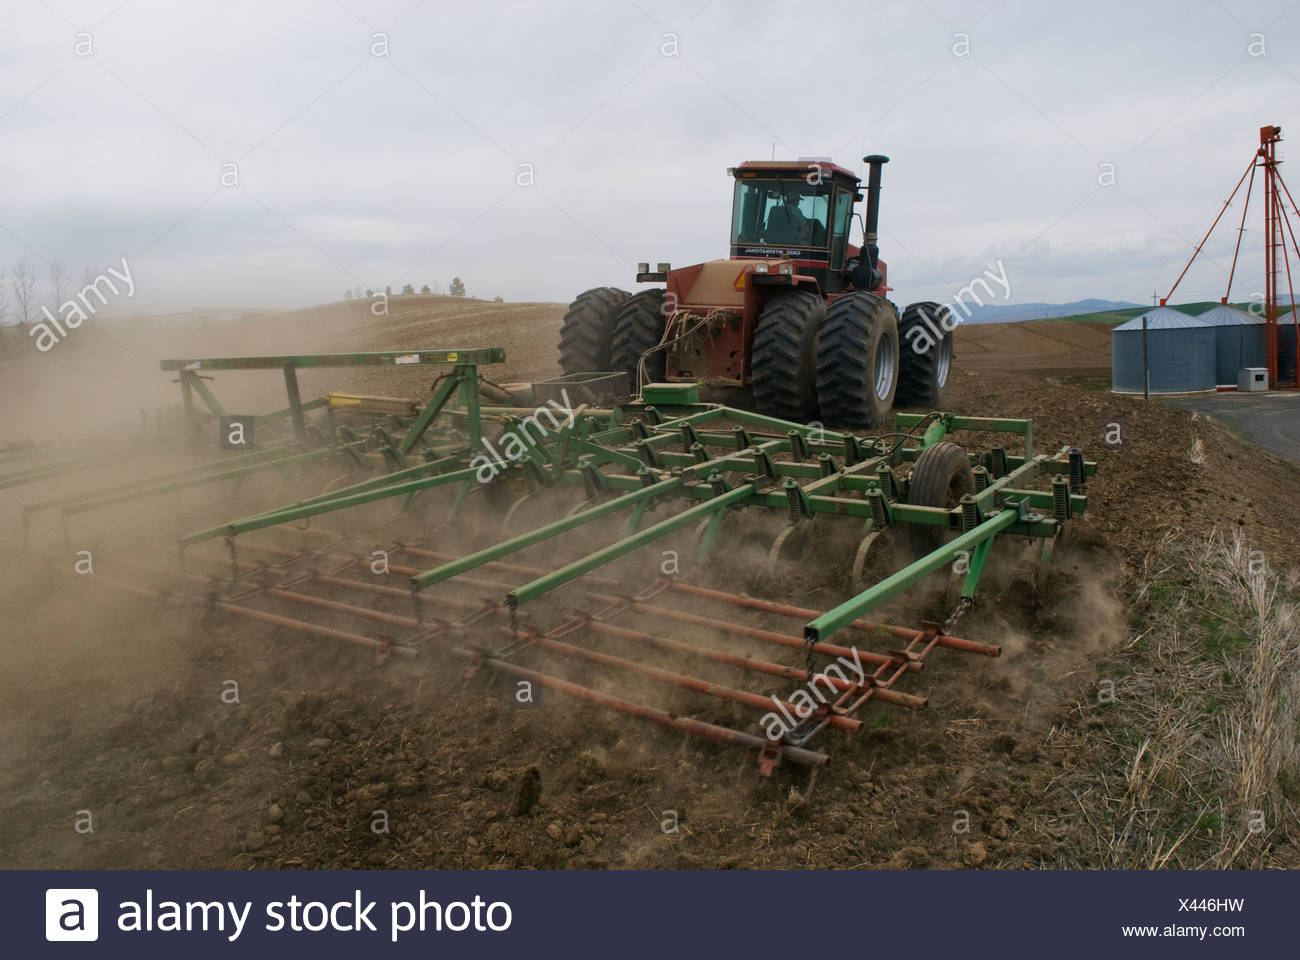 A tractor and cultivator preparing a field for planting garbanzo beans / near Pullman, Palouse Region, Washington, USA. - Stock Image